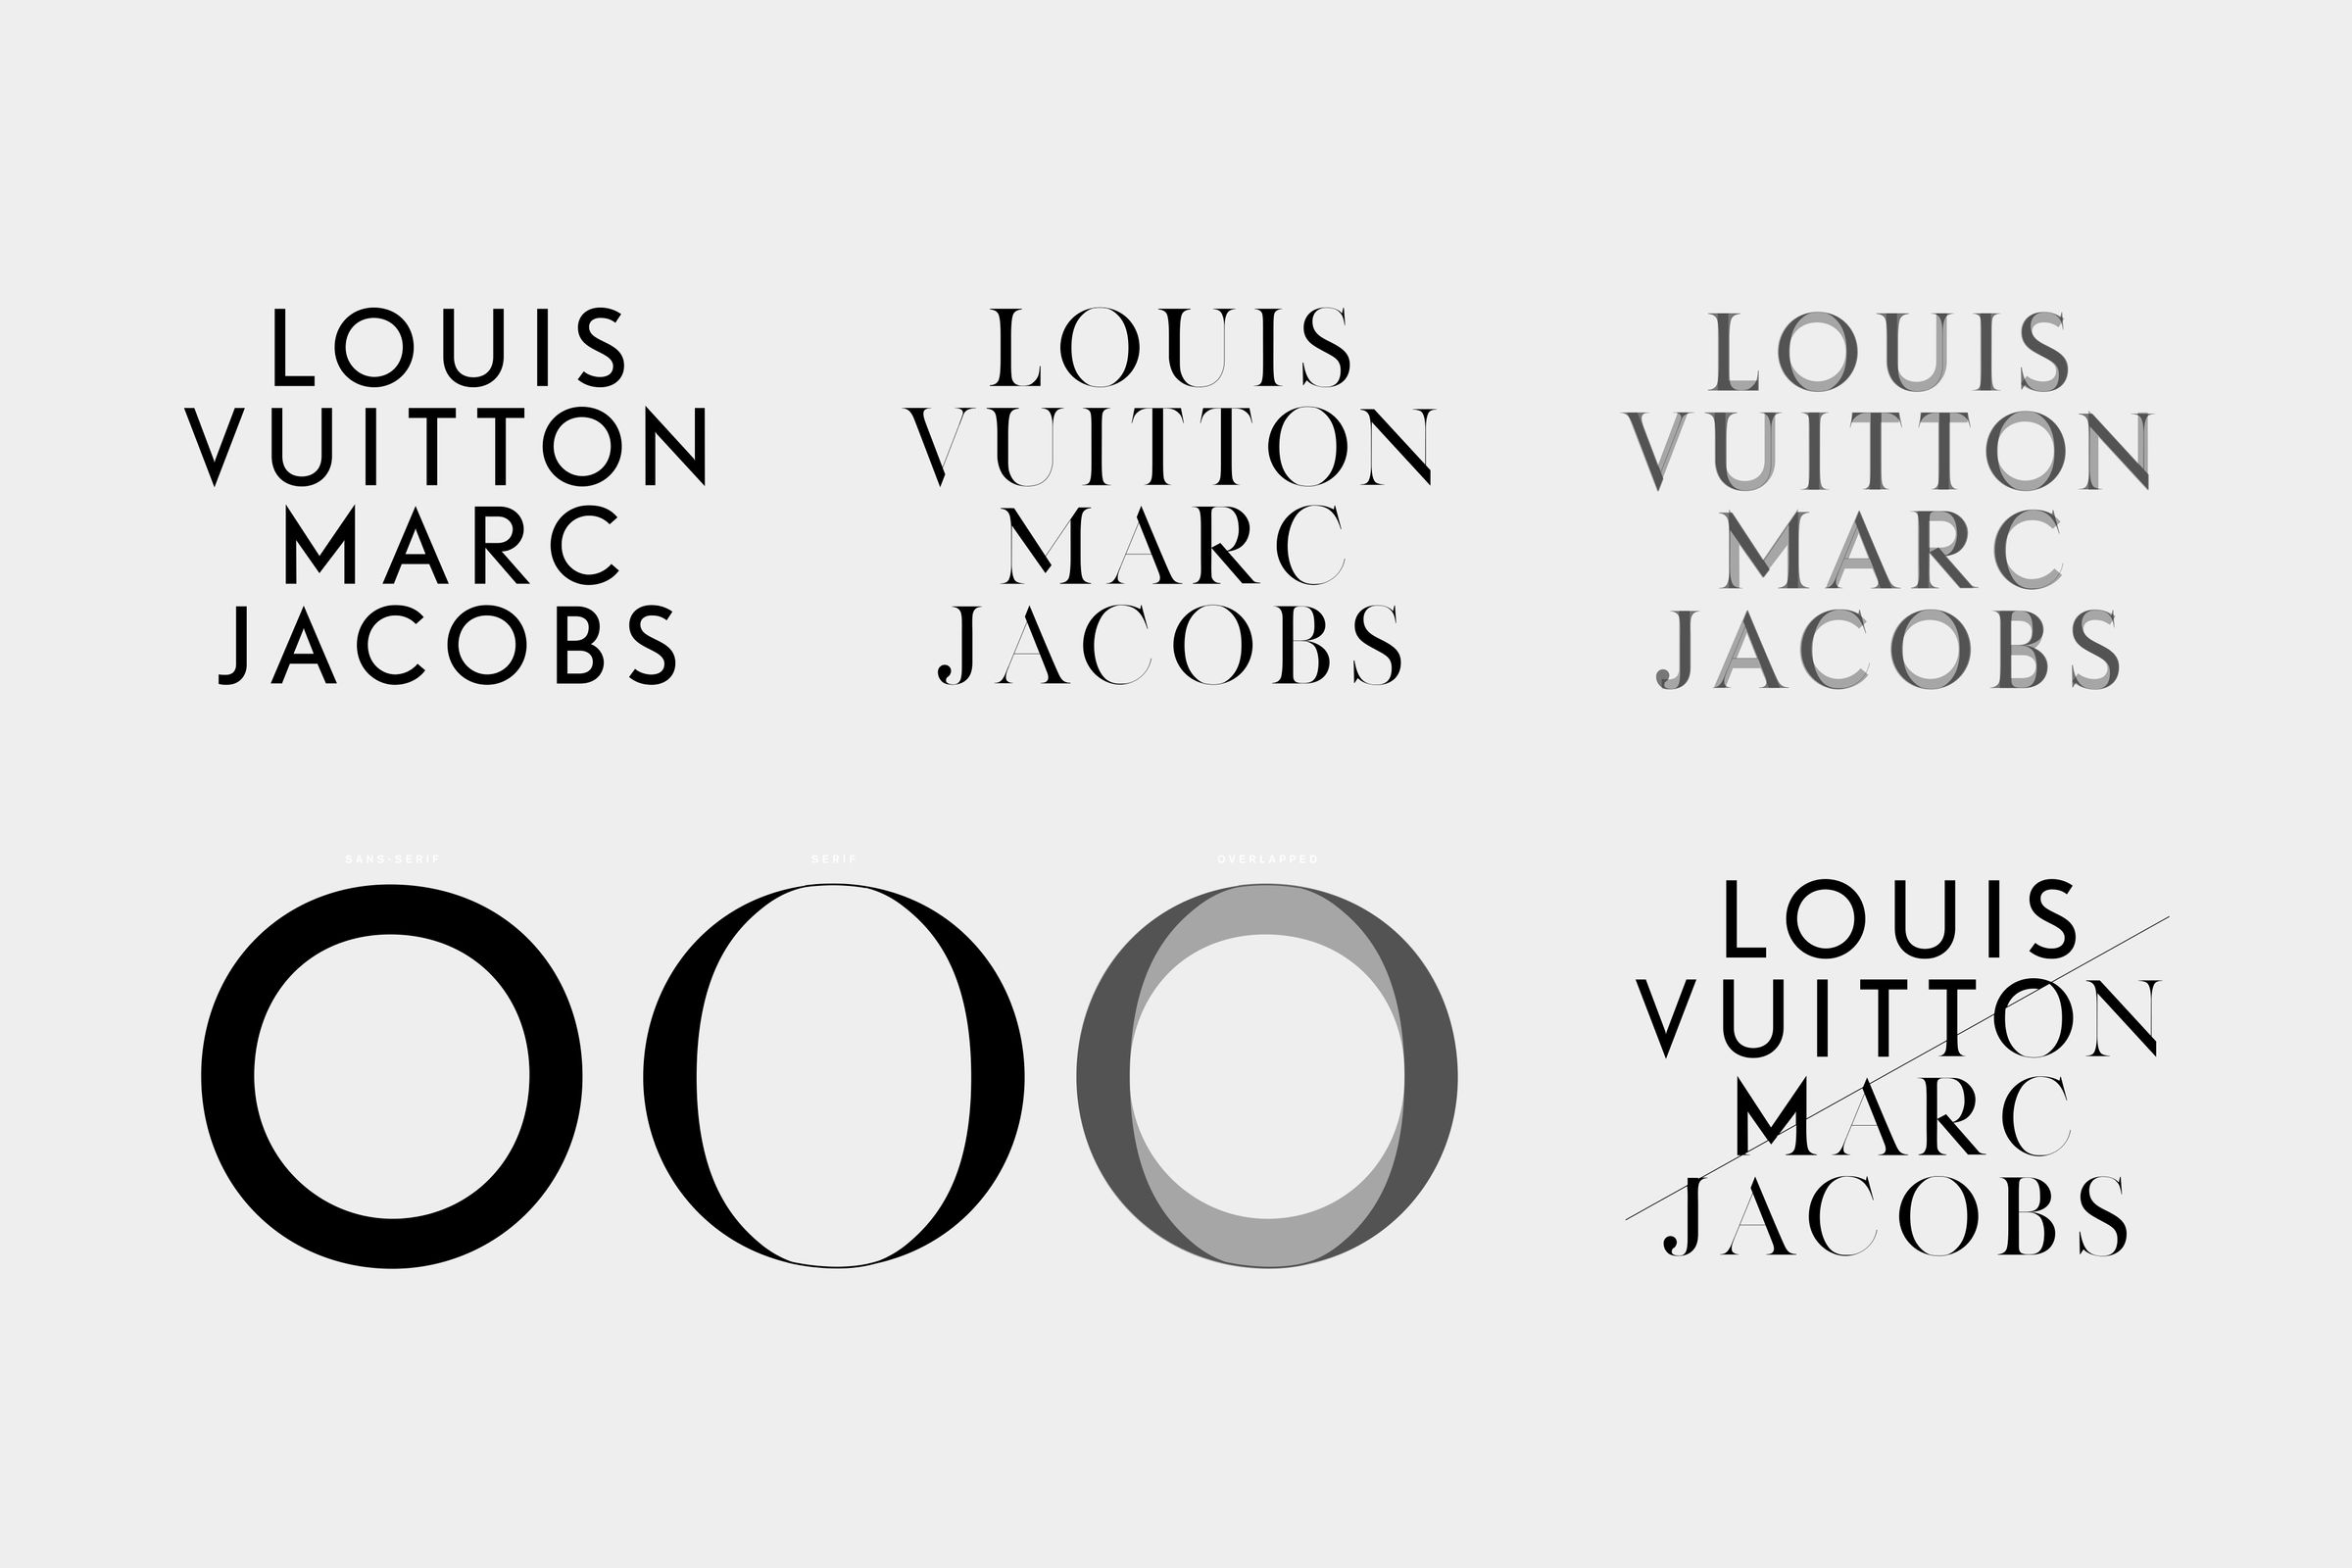 Louis Vuitton Marc Jacobs book custom typography fonts